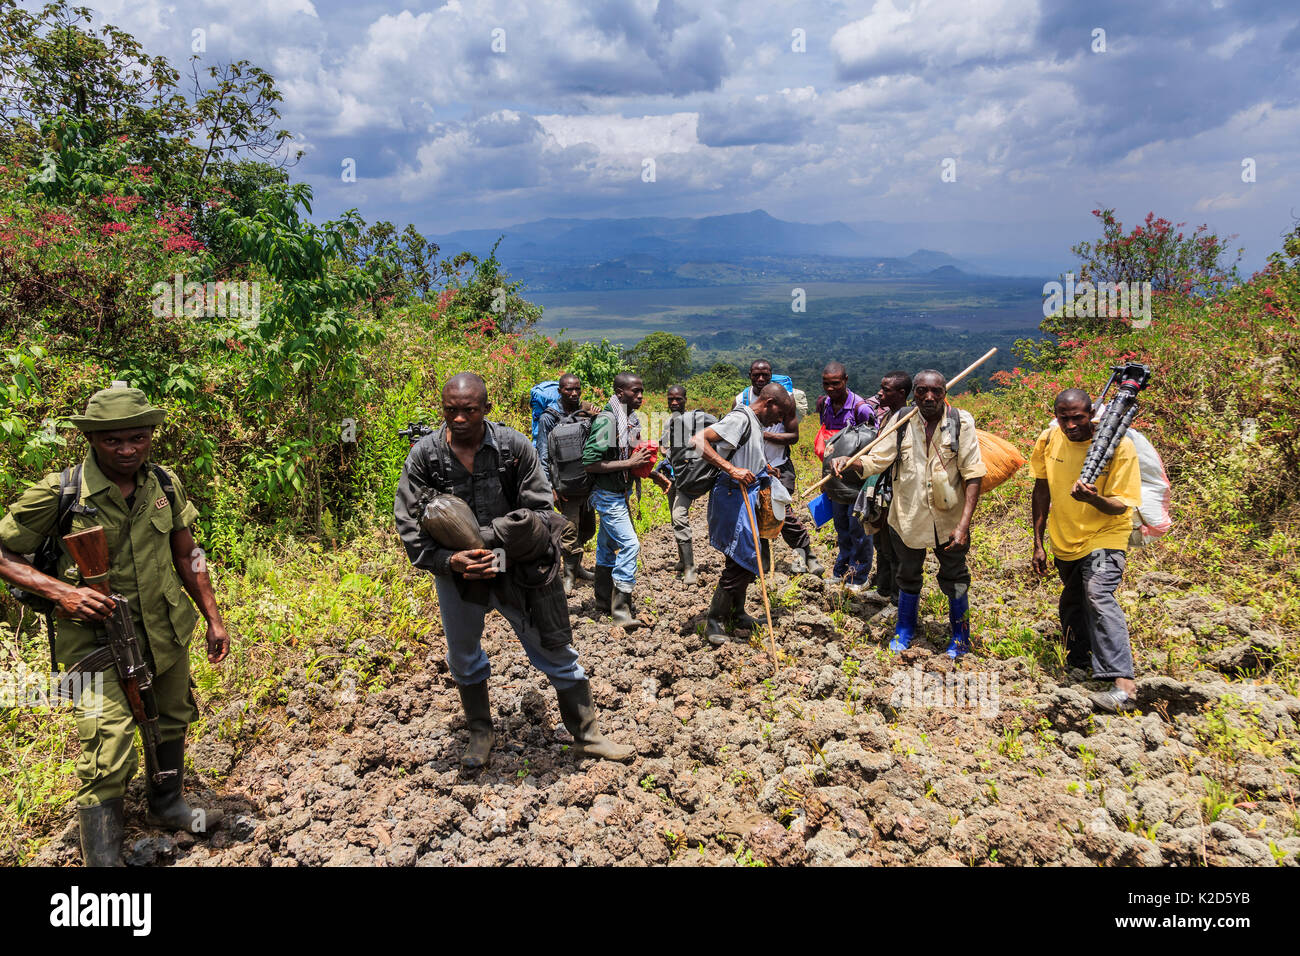 Virunga National Park guard with porters carrying equipment and supplies, on trail to Nyiragongo Volcano, Virunga National Park, North Kivu Province, Democratic Republic of Congo. September 2015. - Stock Image